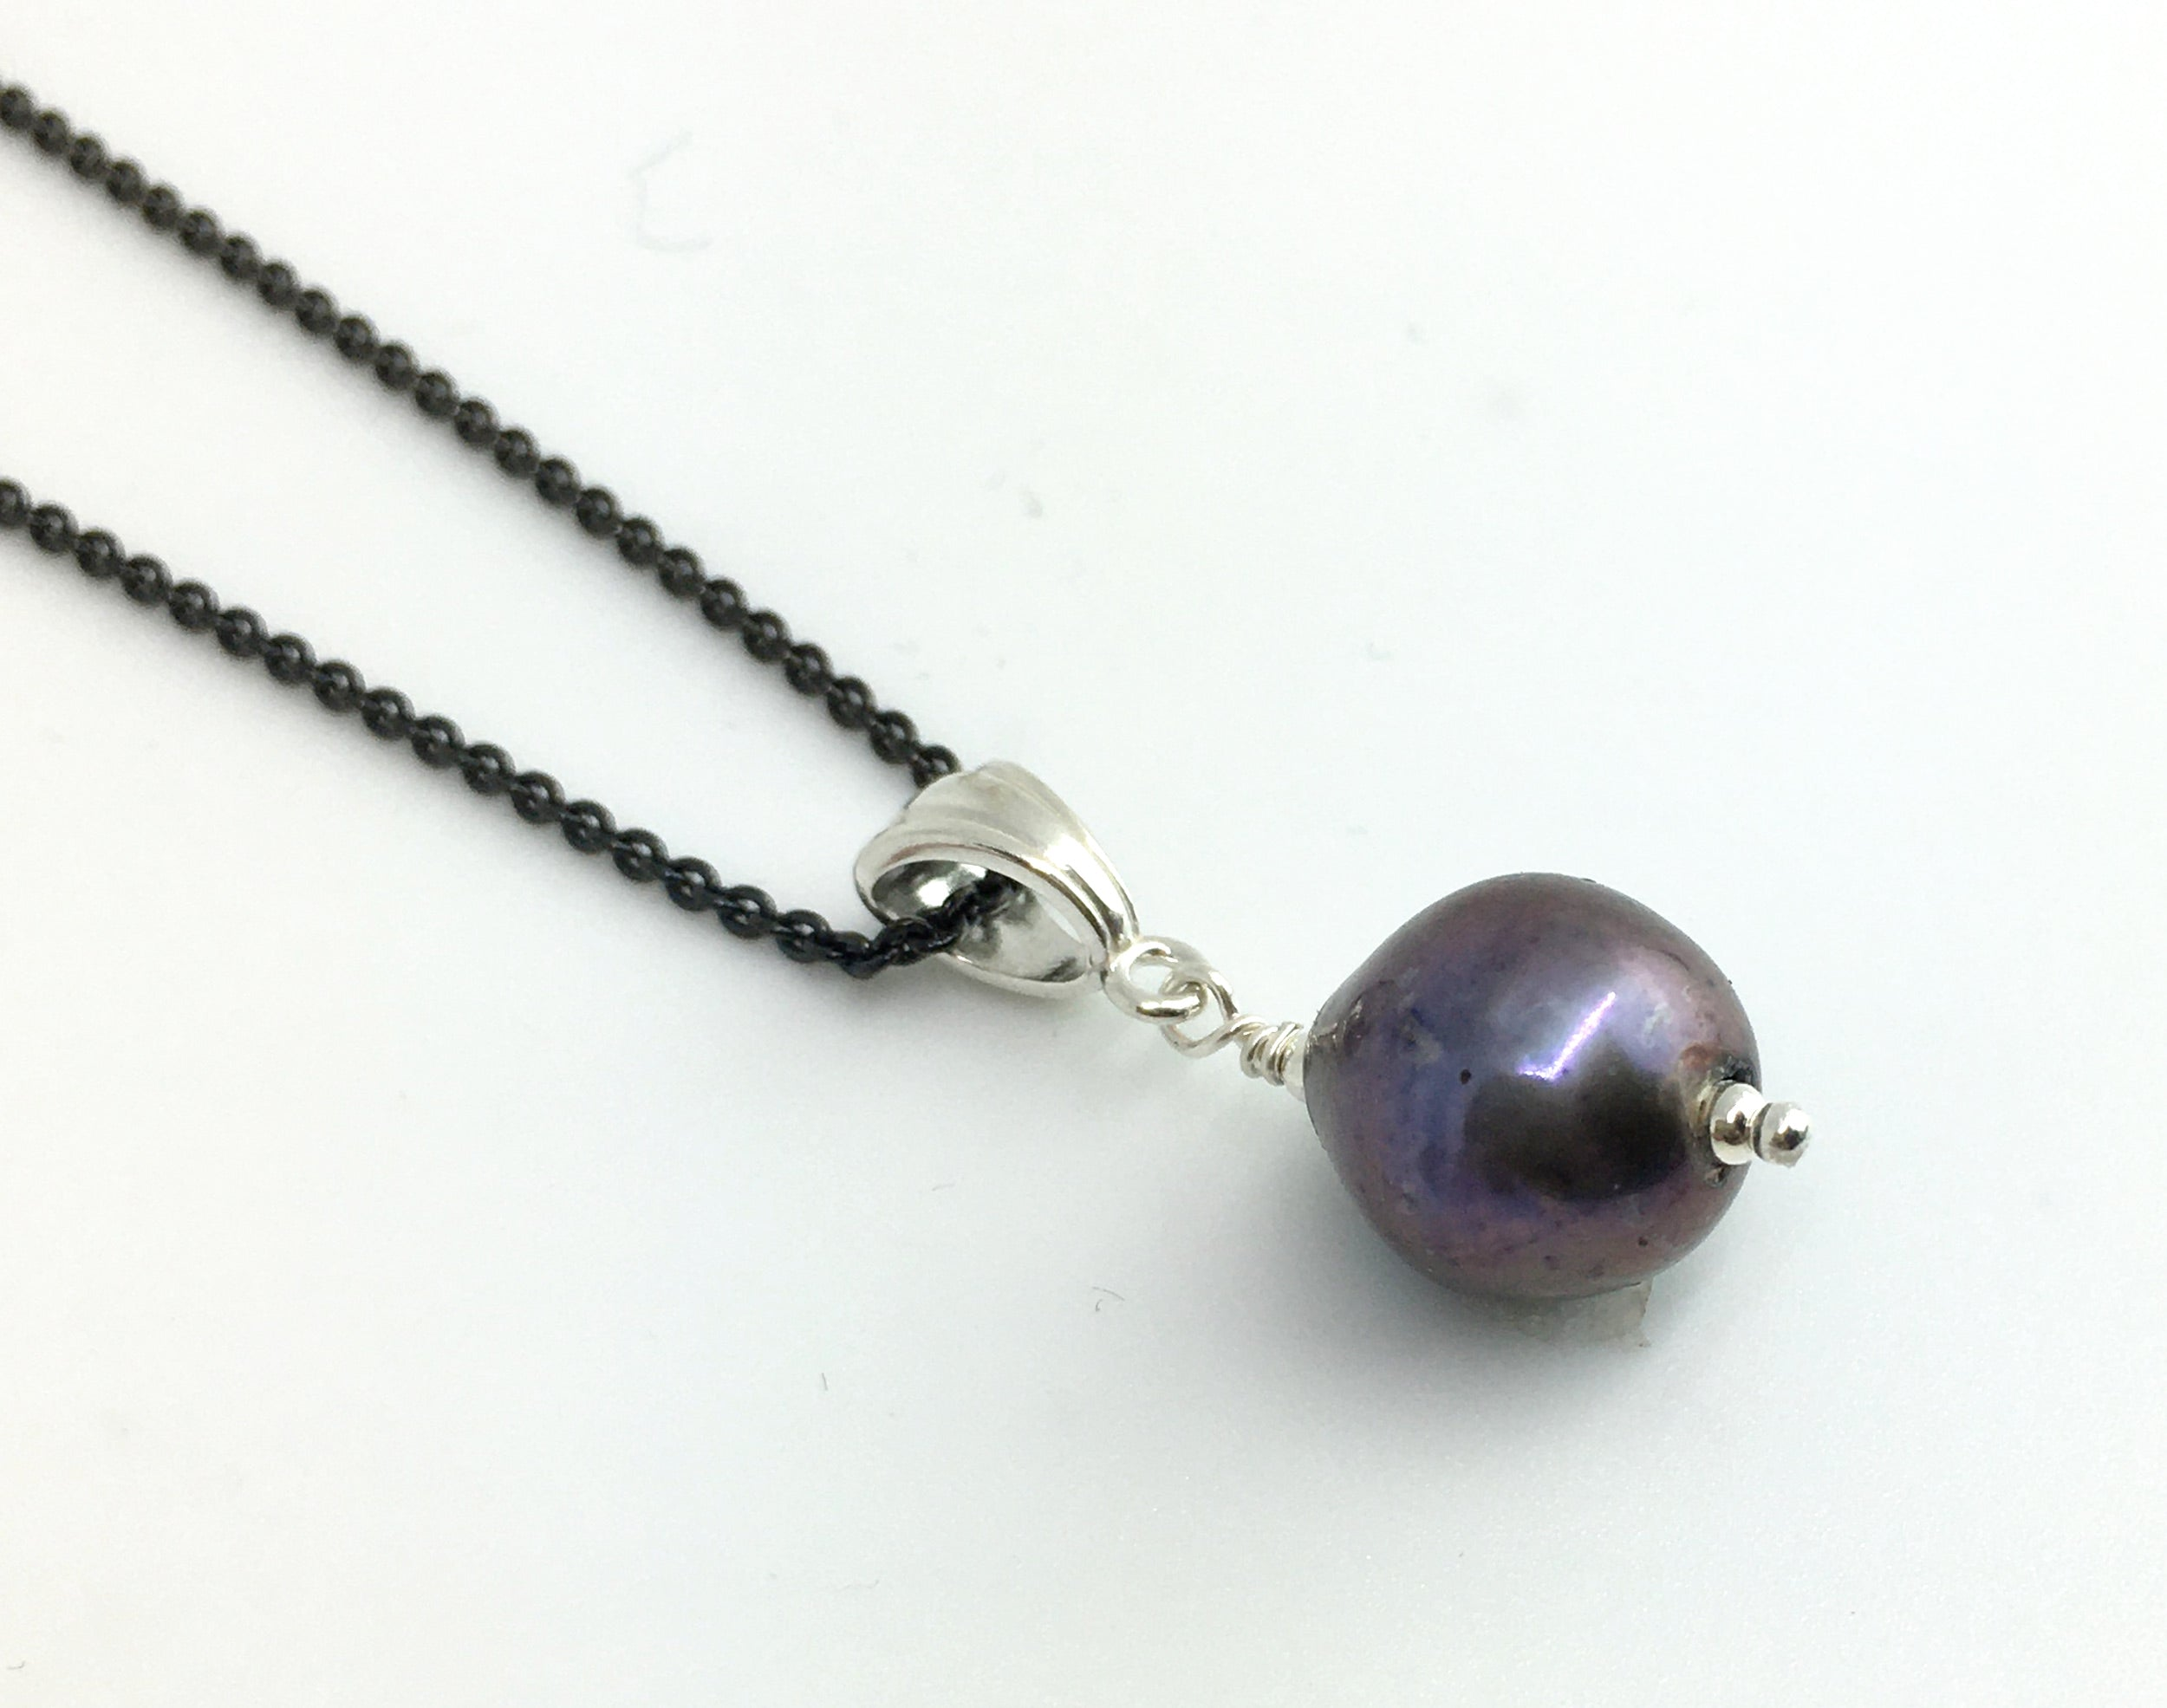 Single Freshwater Purple Peacock Pearl Pendant Necklace on Black Sterling Silver Cable Chain